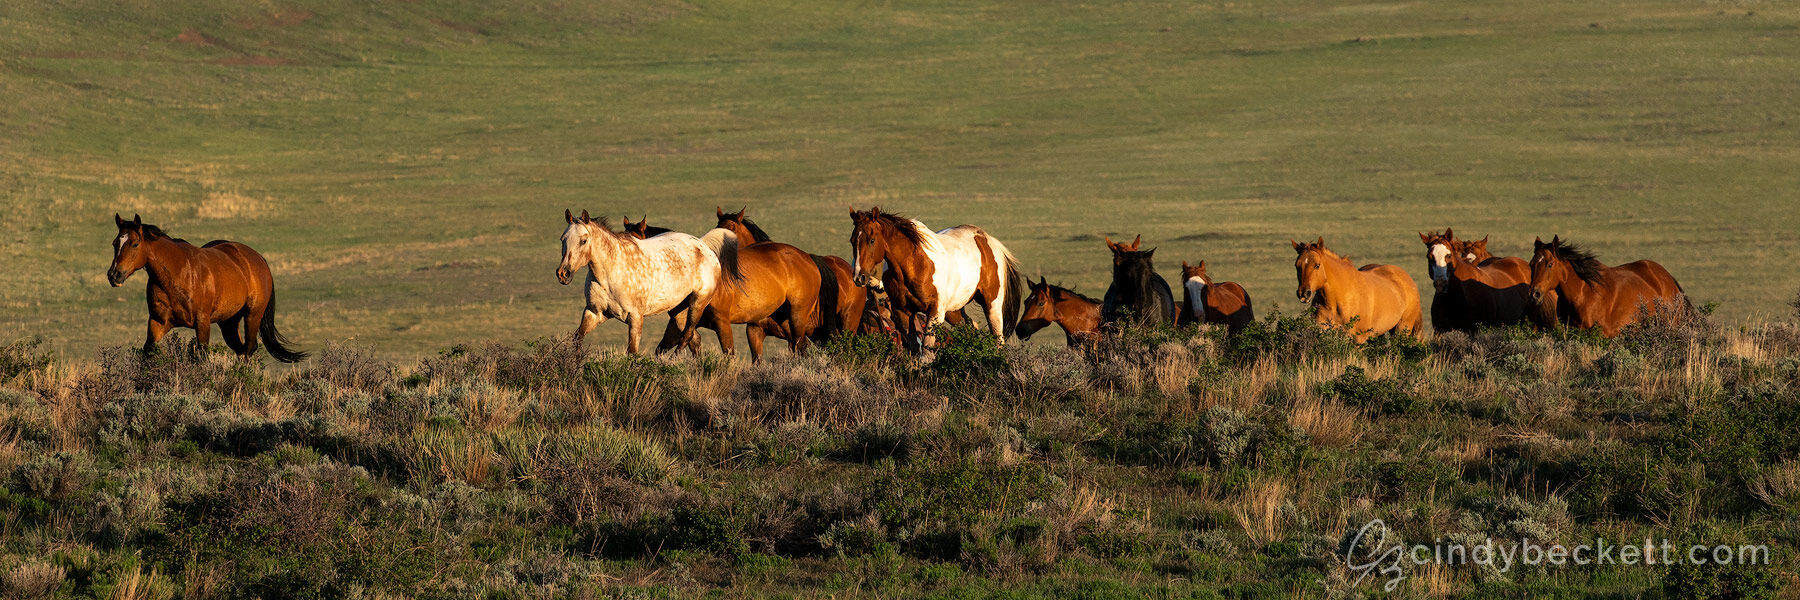 Early morning light captures a herd of horses running freely through the grass and scrub brush meadows in this high Alpine valley in central Colorado.